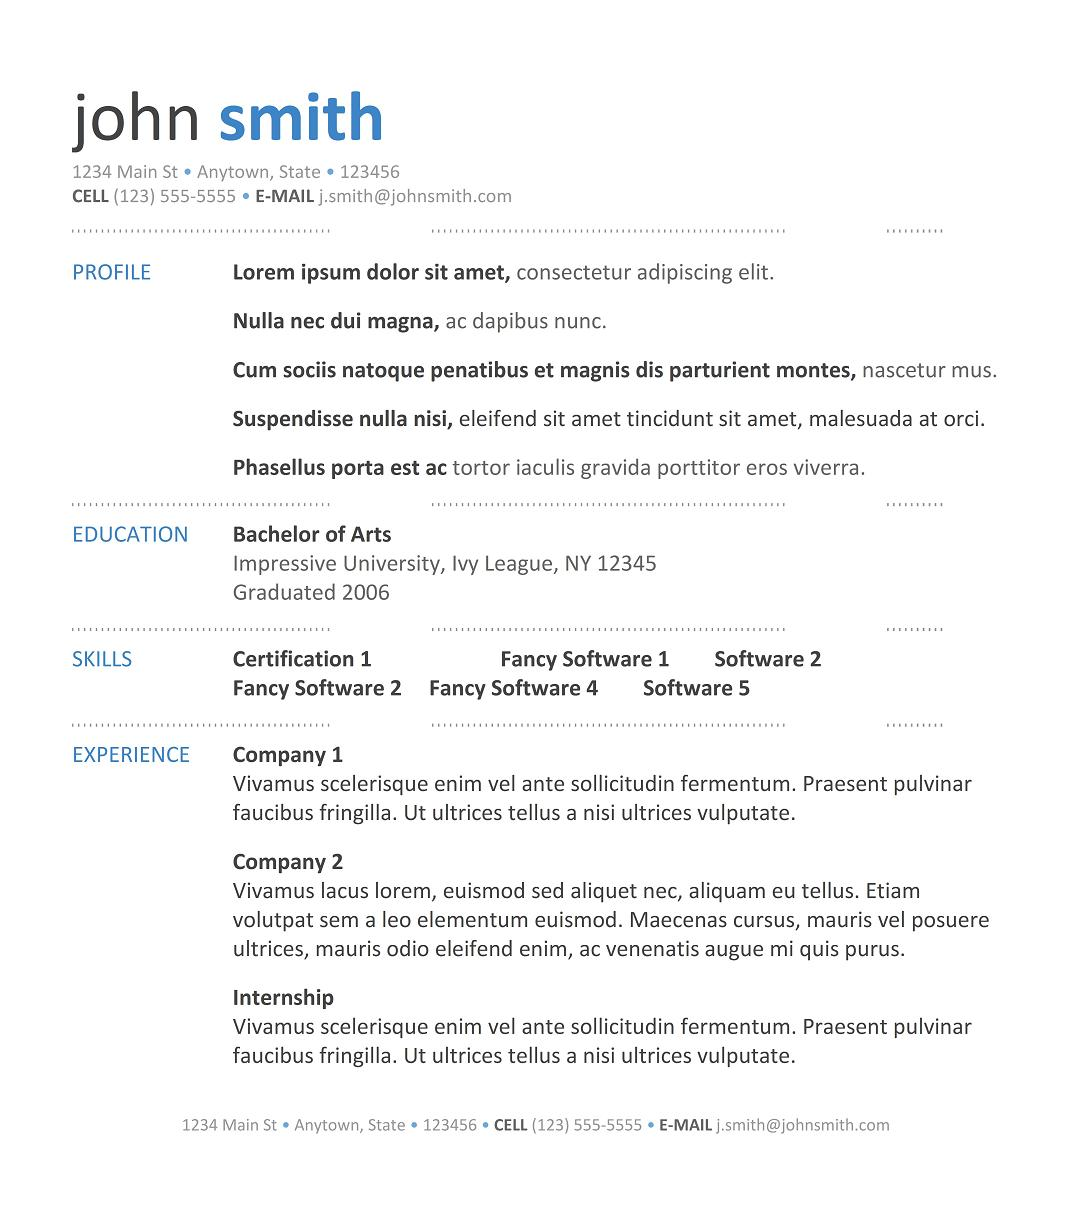 professional resume template example - Samples Of Professional Resume